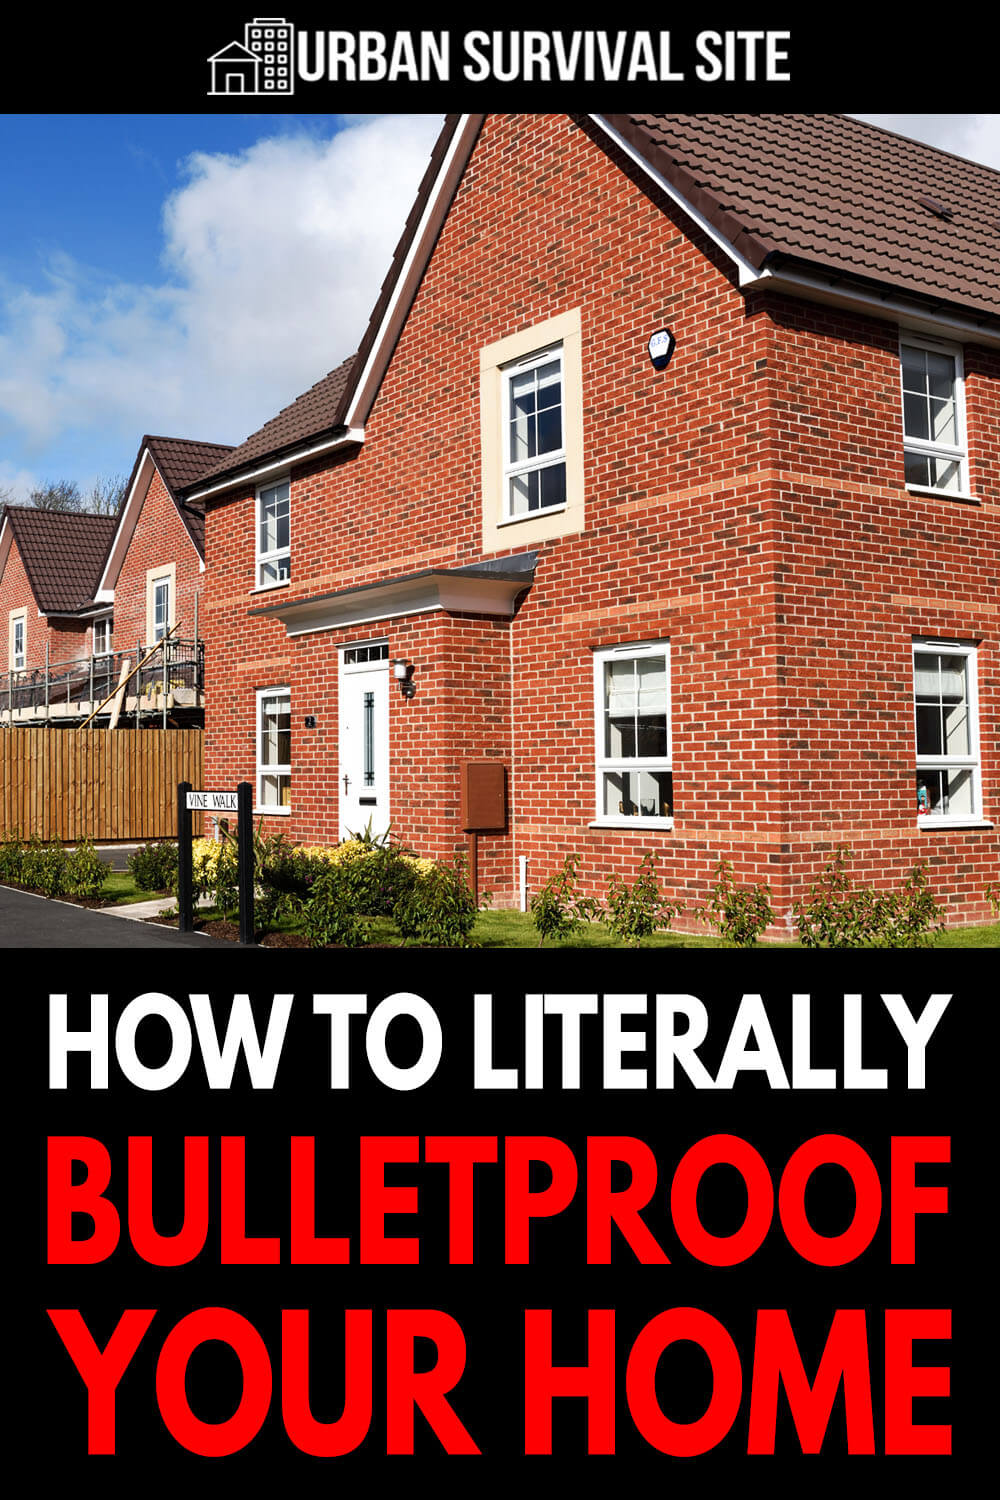 How To Literally Bulletproof Your Home